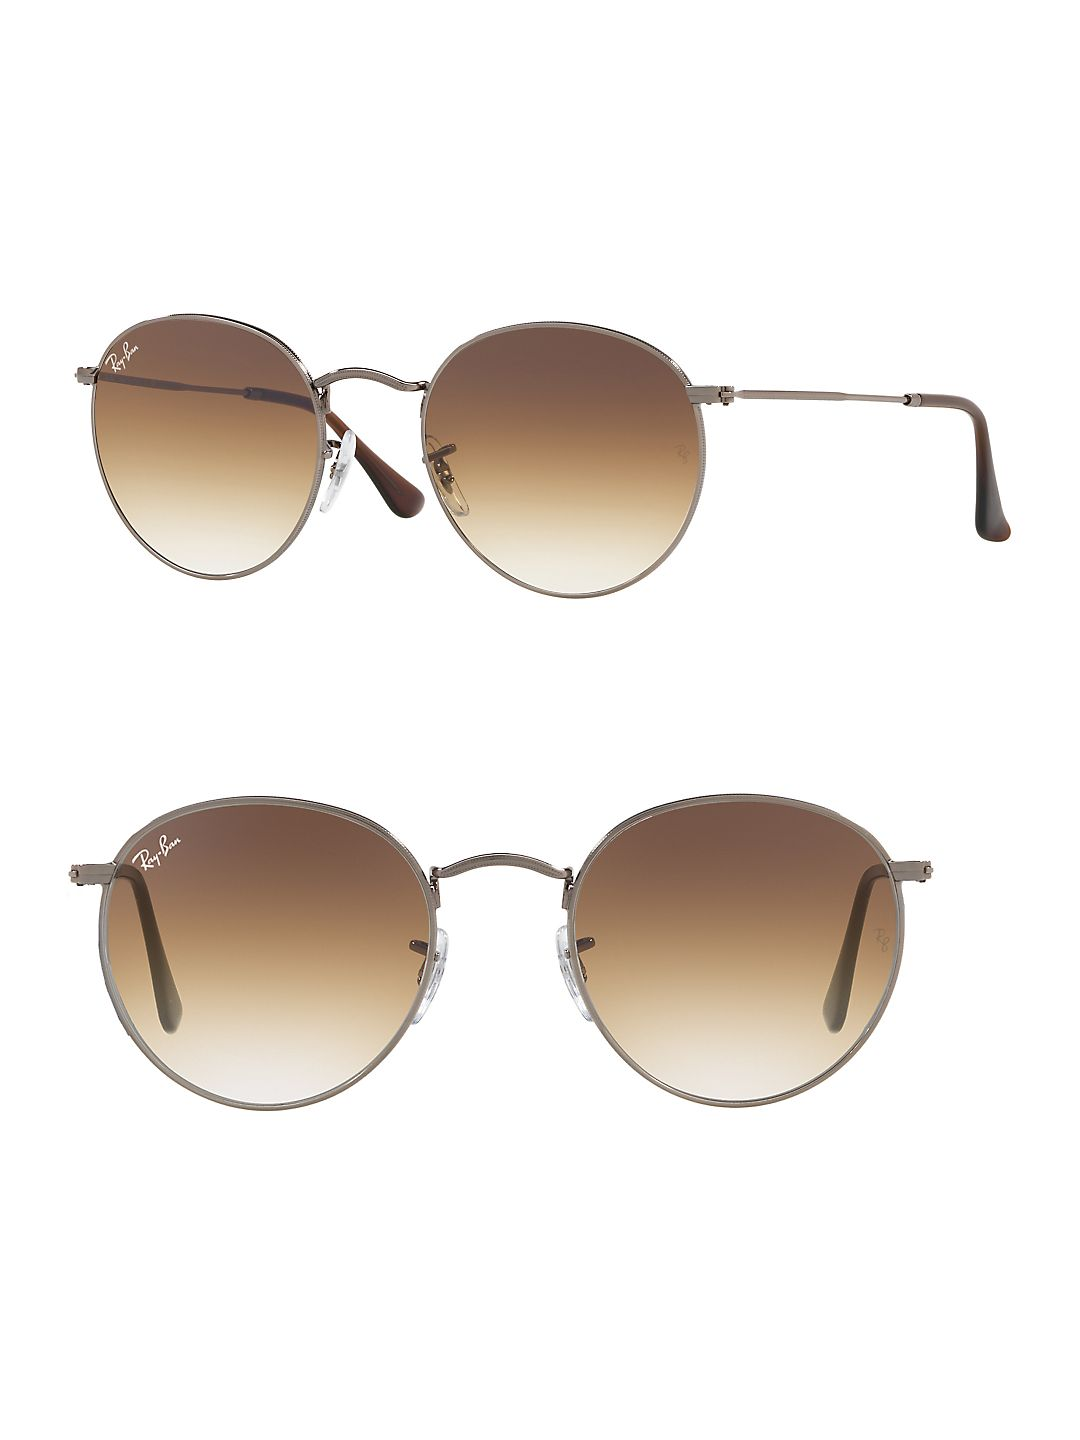 Ray-Ban Unisex RB3447N Round Metal Sunglasses, 50mm